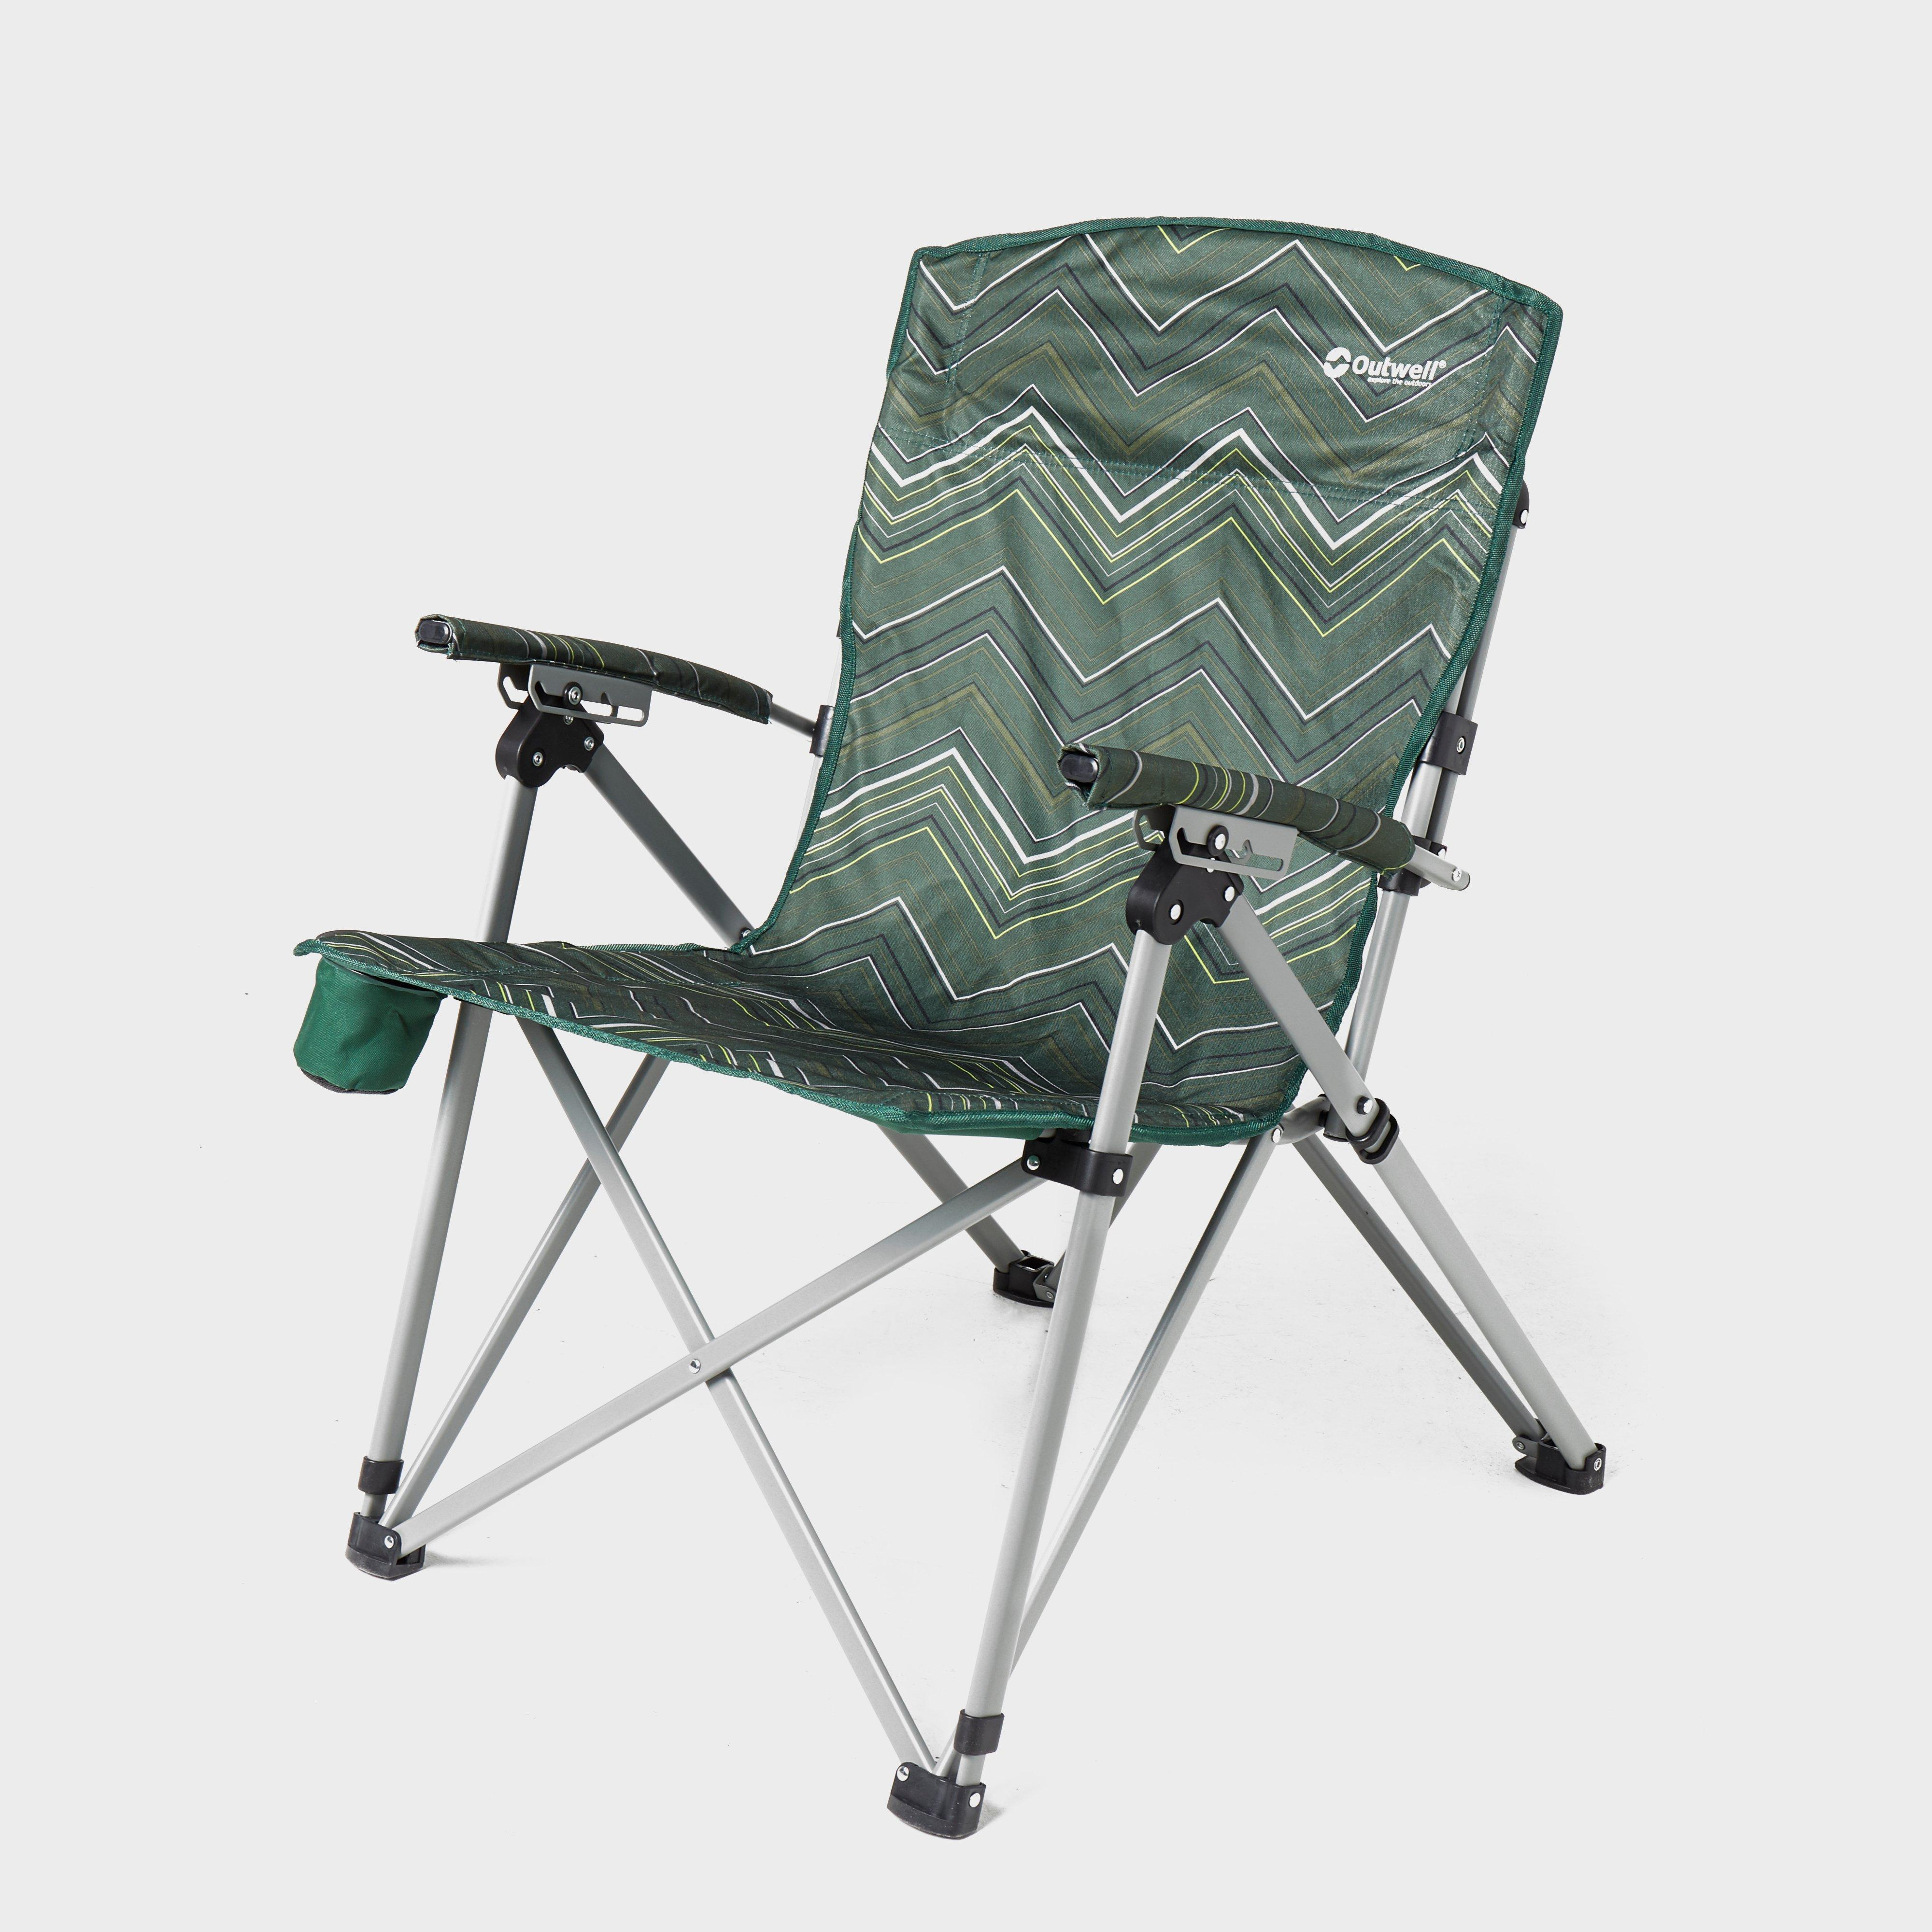 Green Outwell Palena Hills Camping Chair